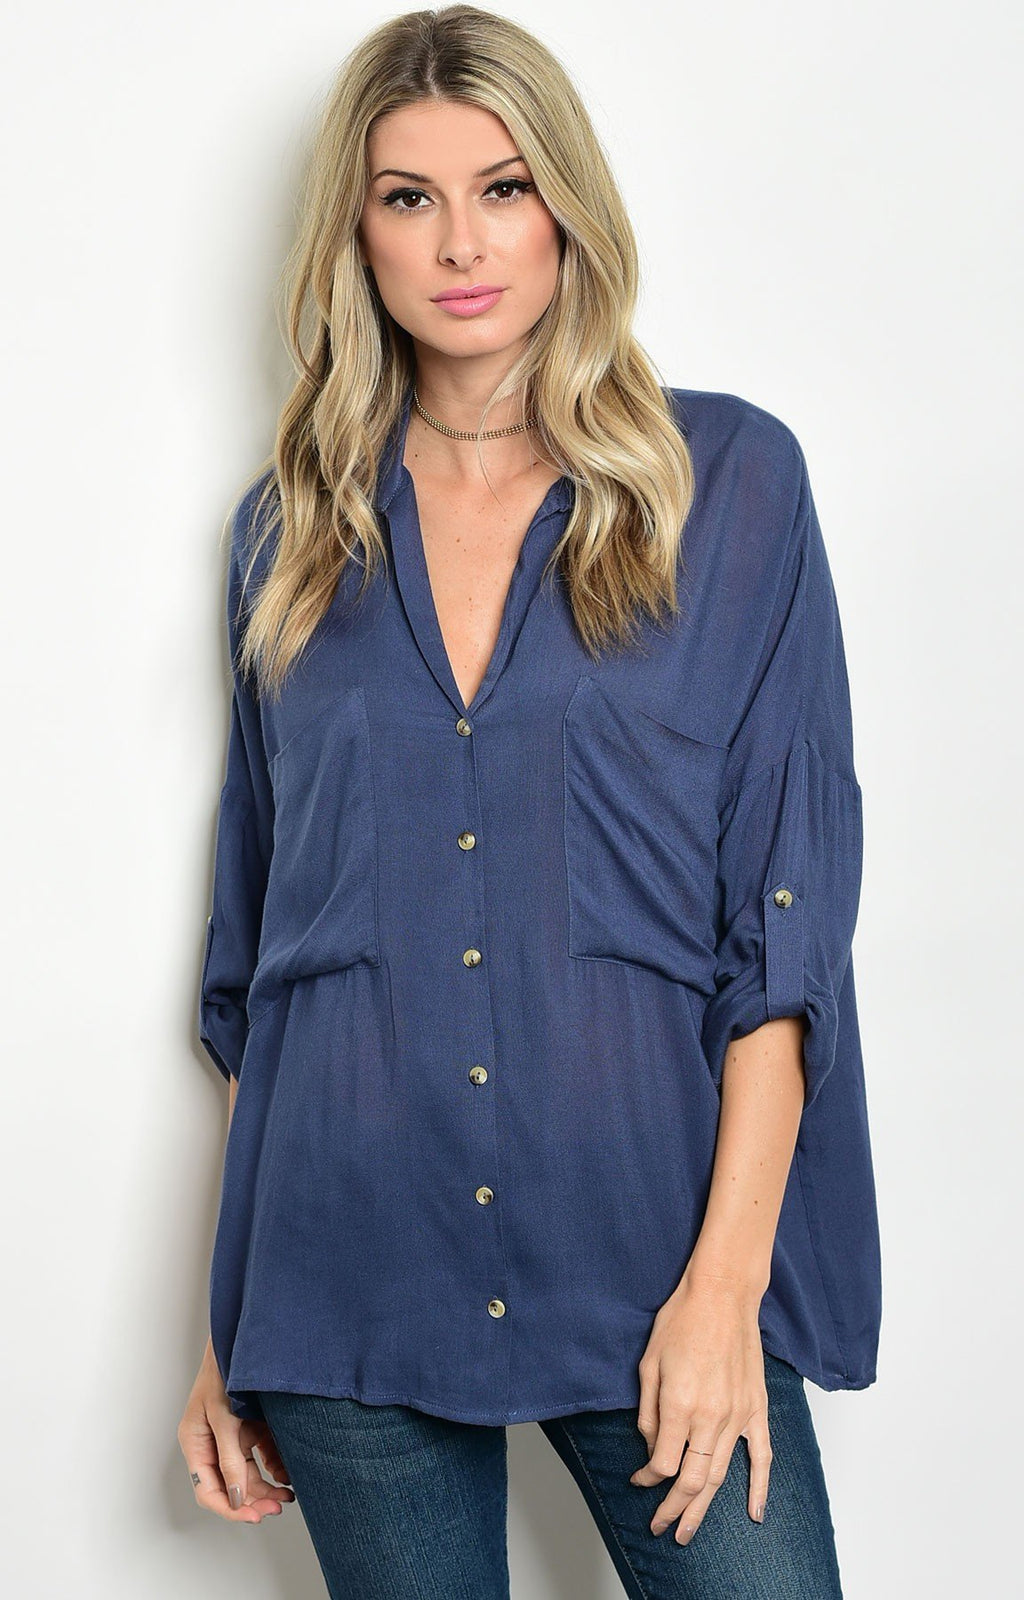 Lana Loose Fit Blouse in Navy